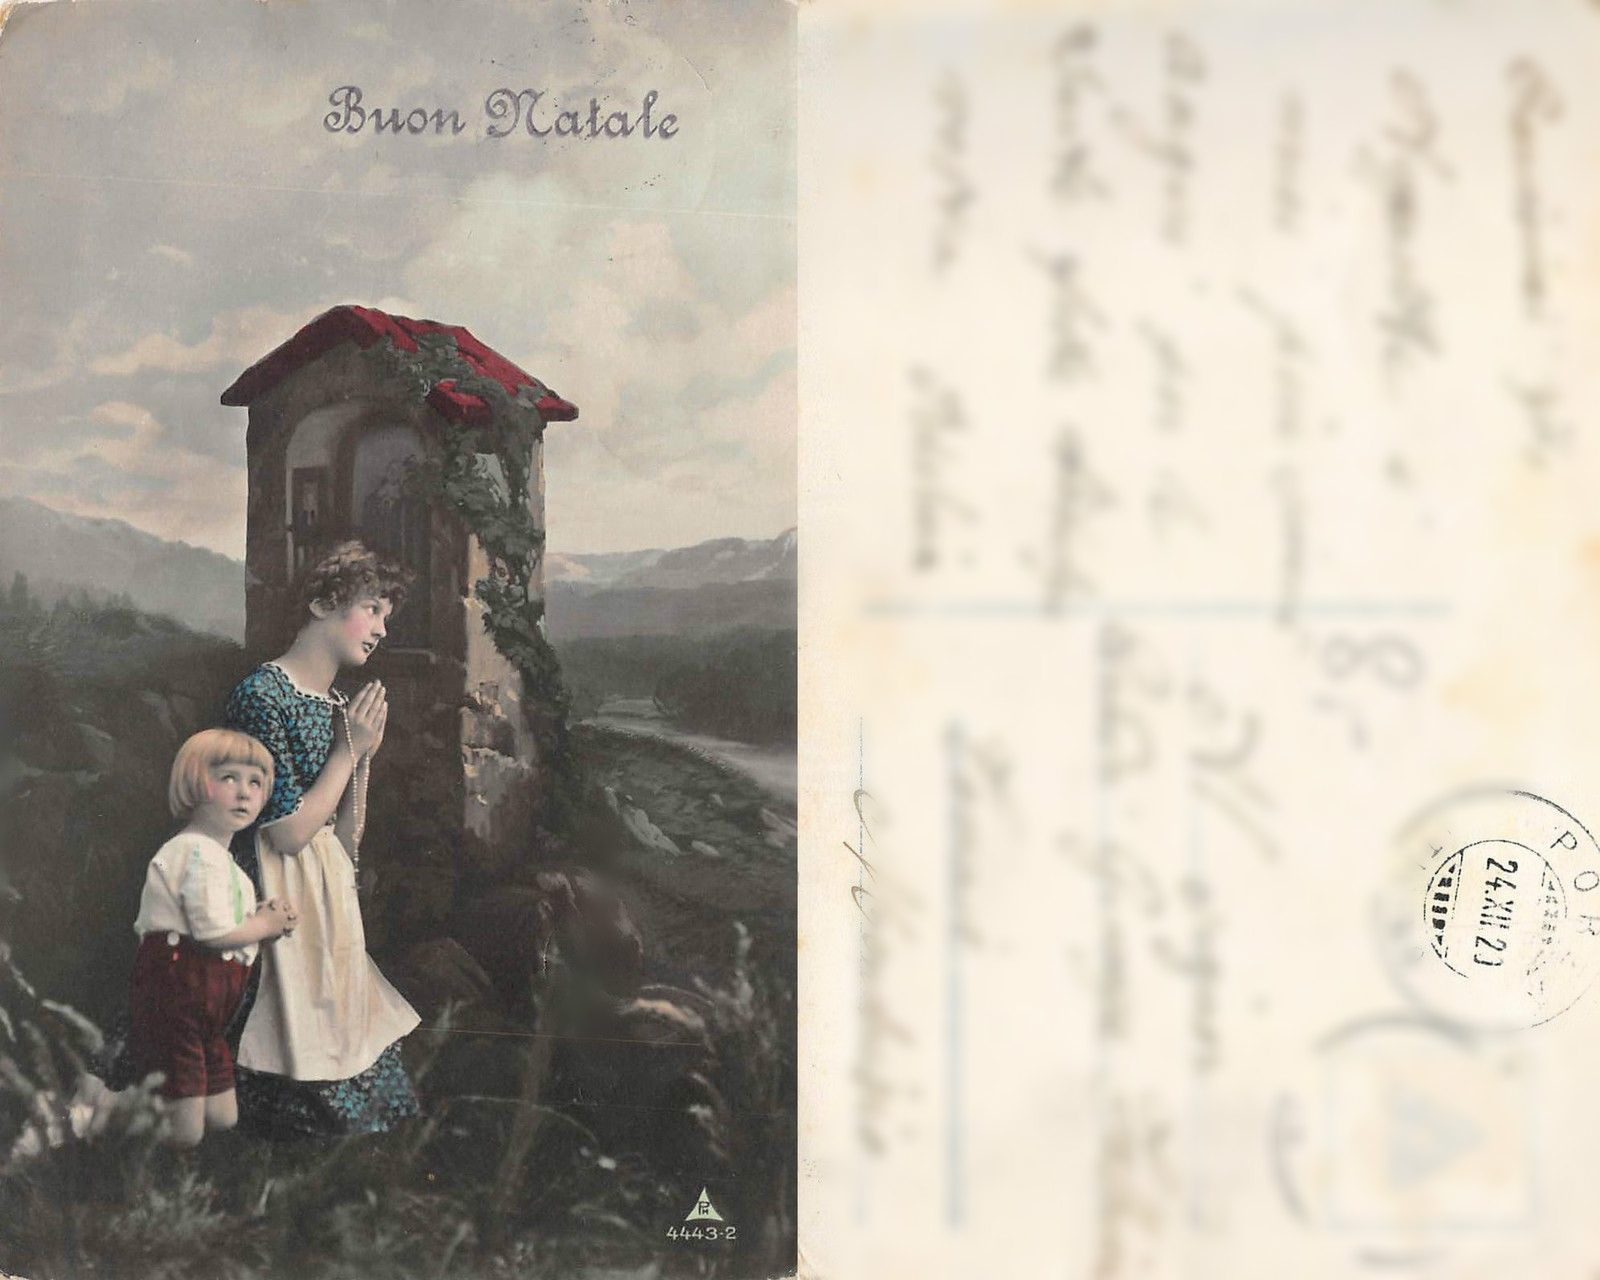 A Christmas postcard sent to my great grandmother on 24.12. 1920.